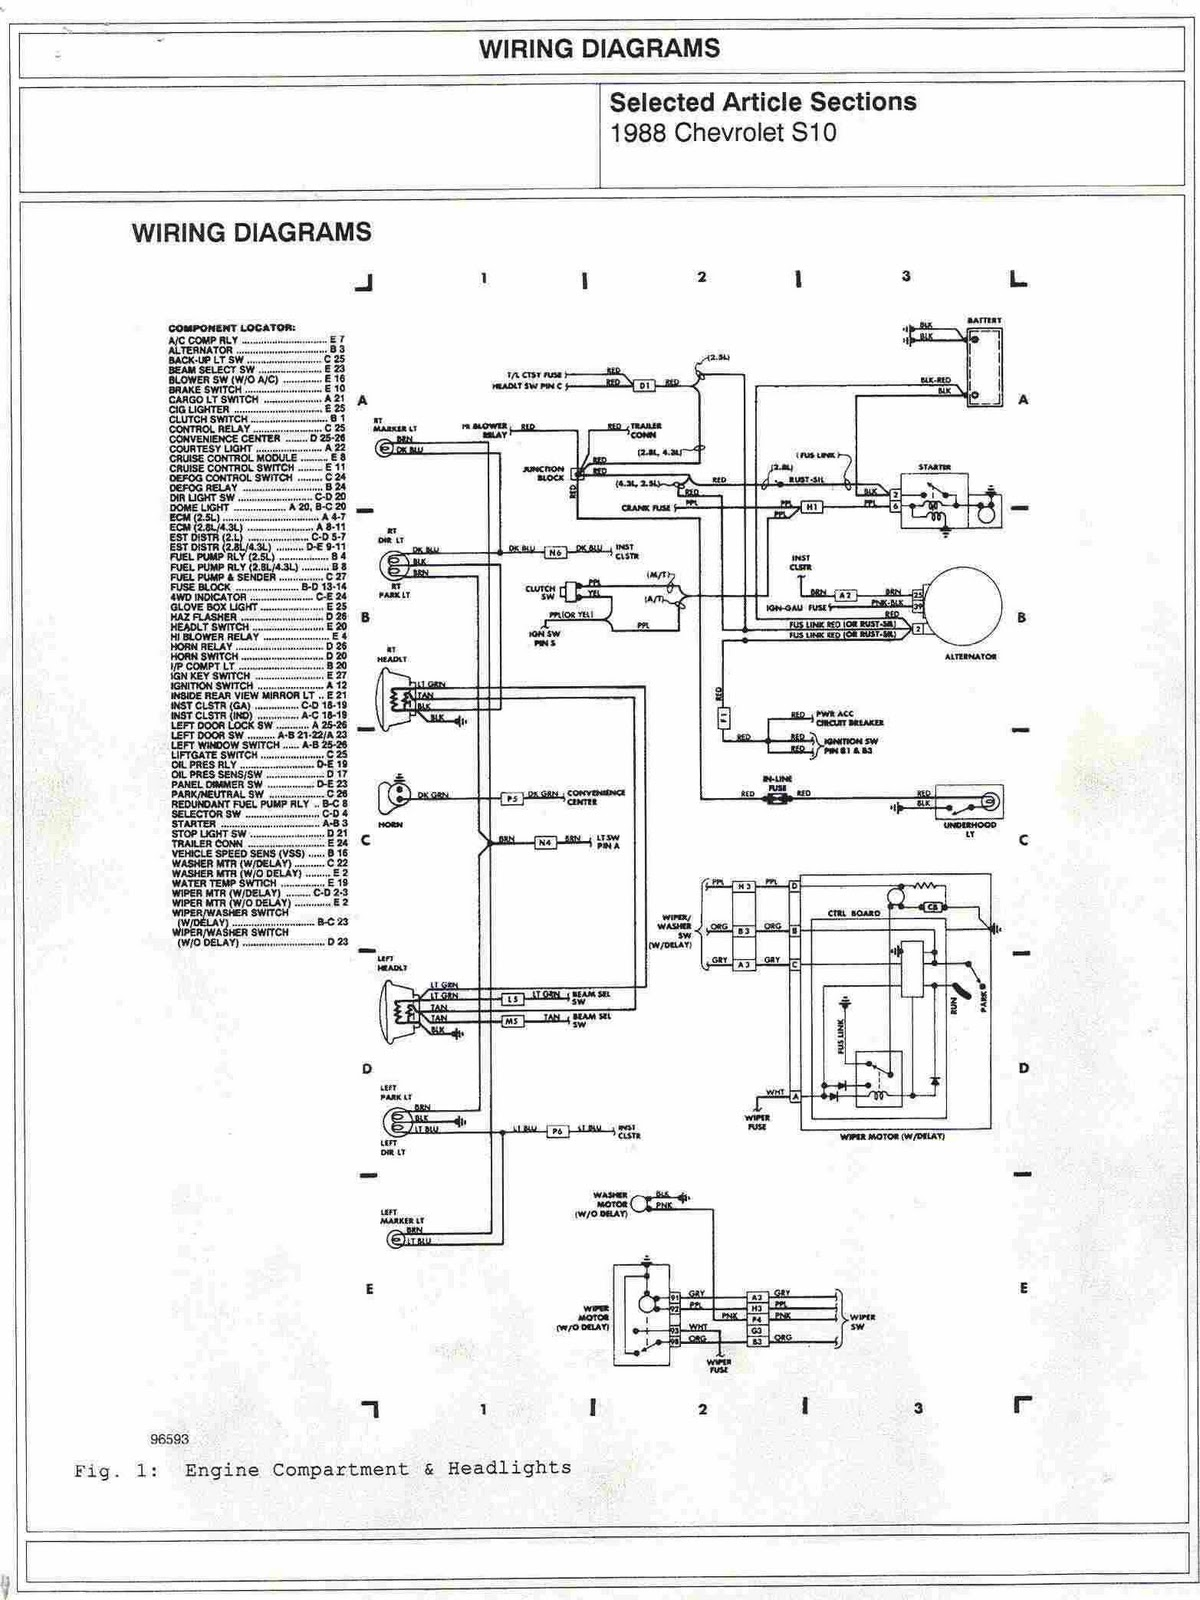 Engine Wiring Diagrams Diagram For Driving Lights 87 Chrysler Lebaron Porsche 944